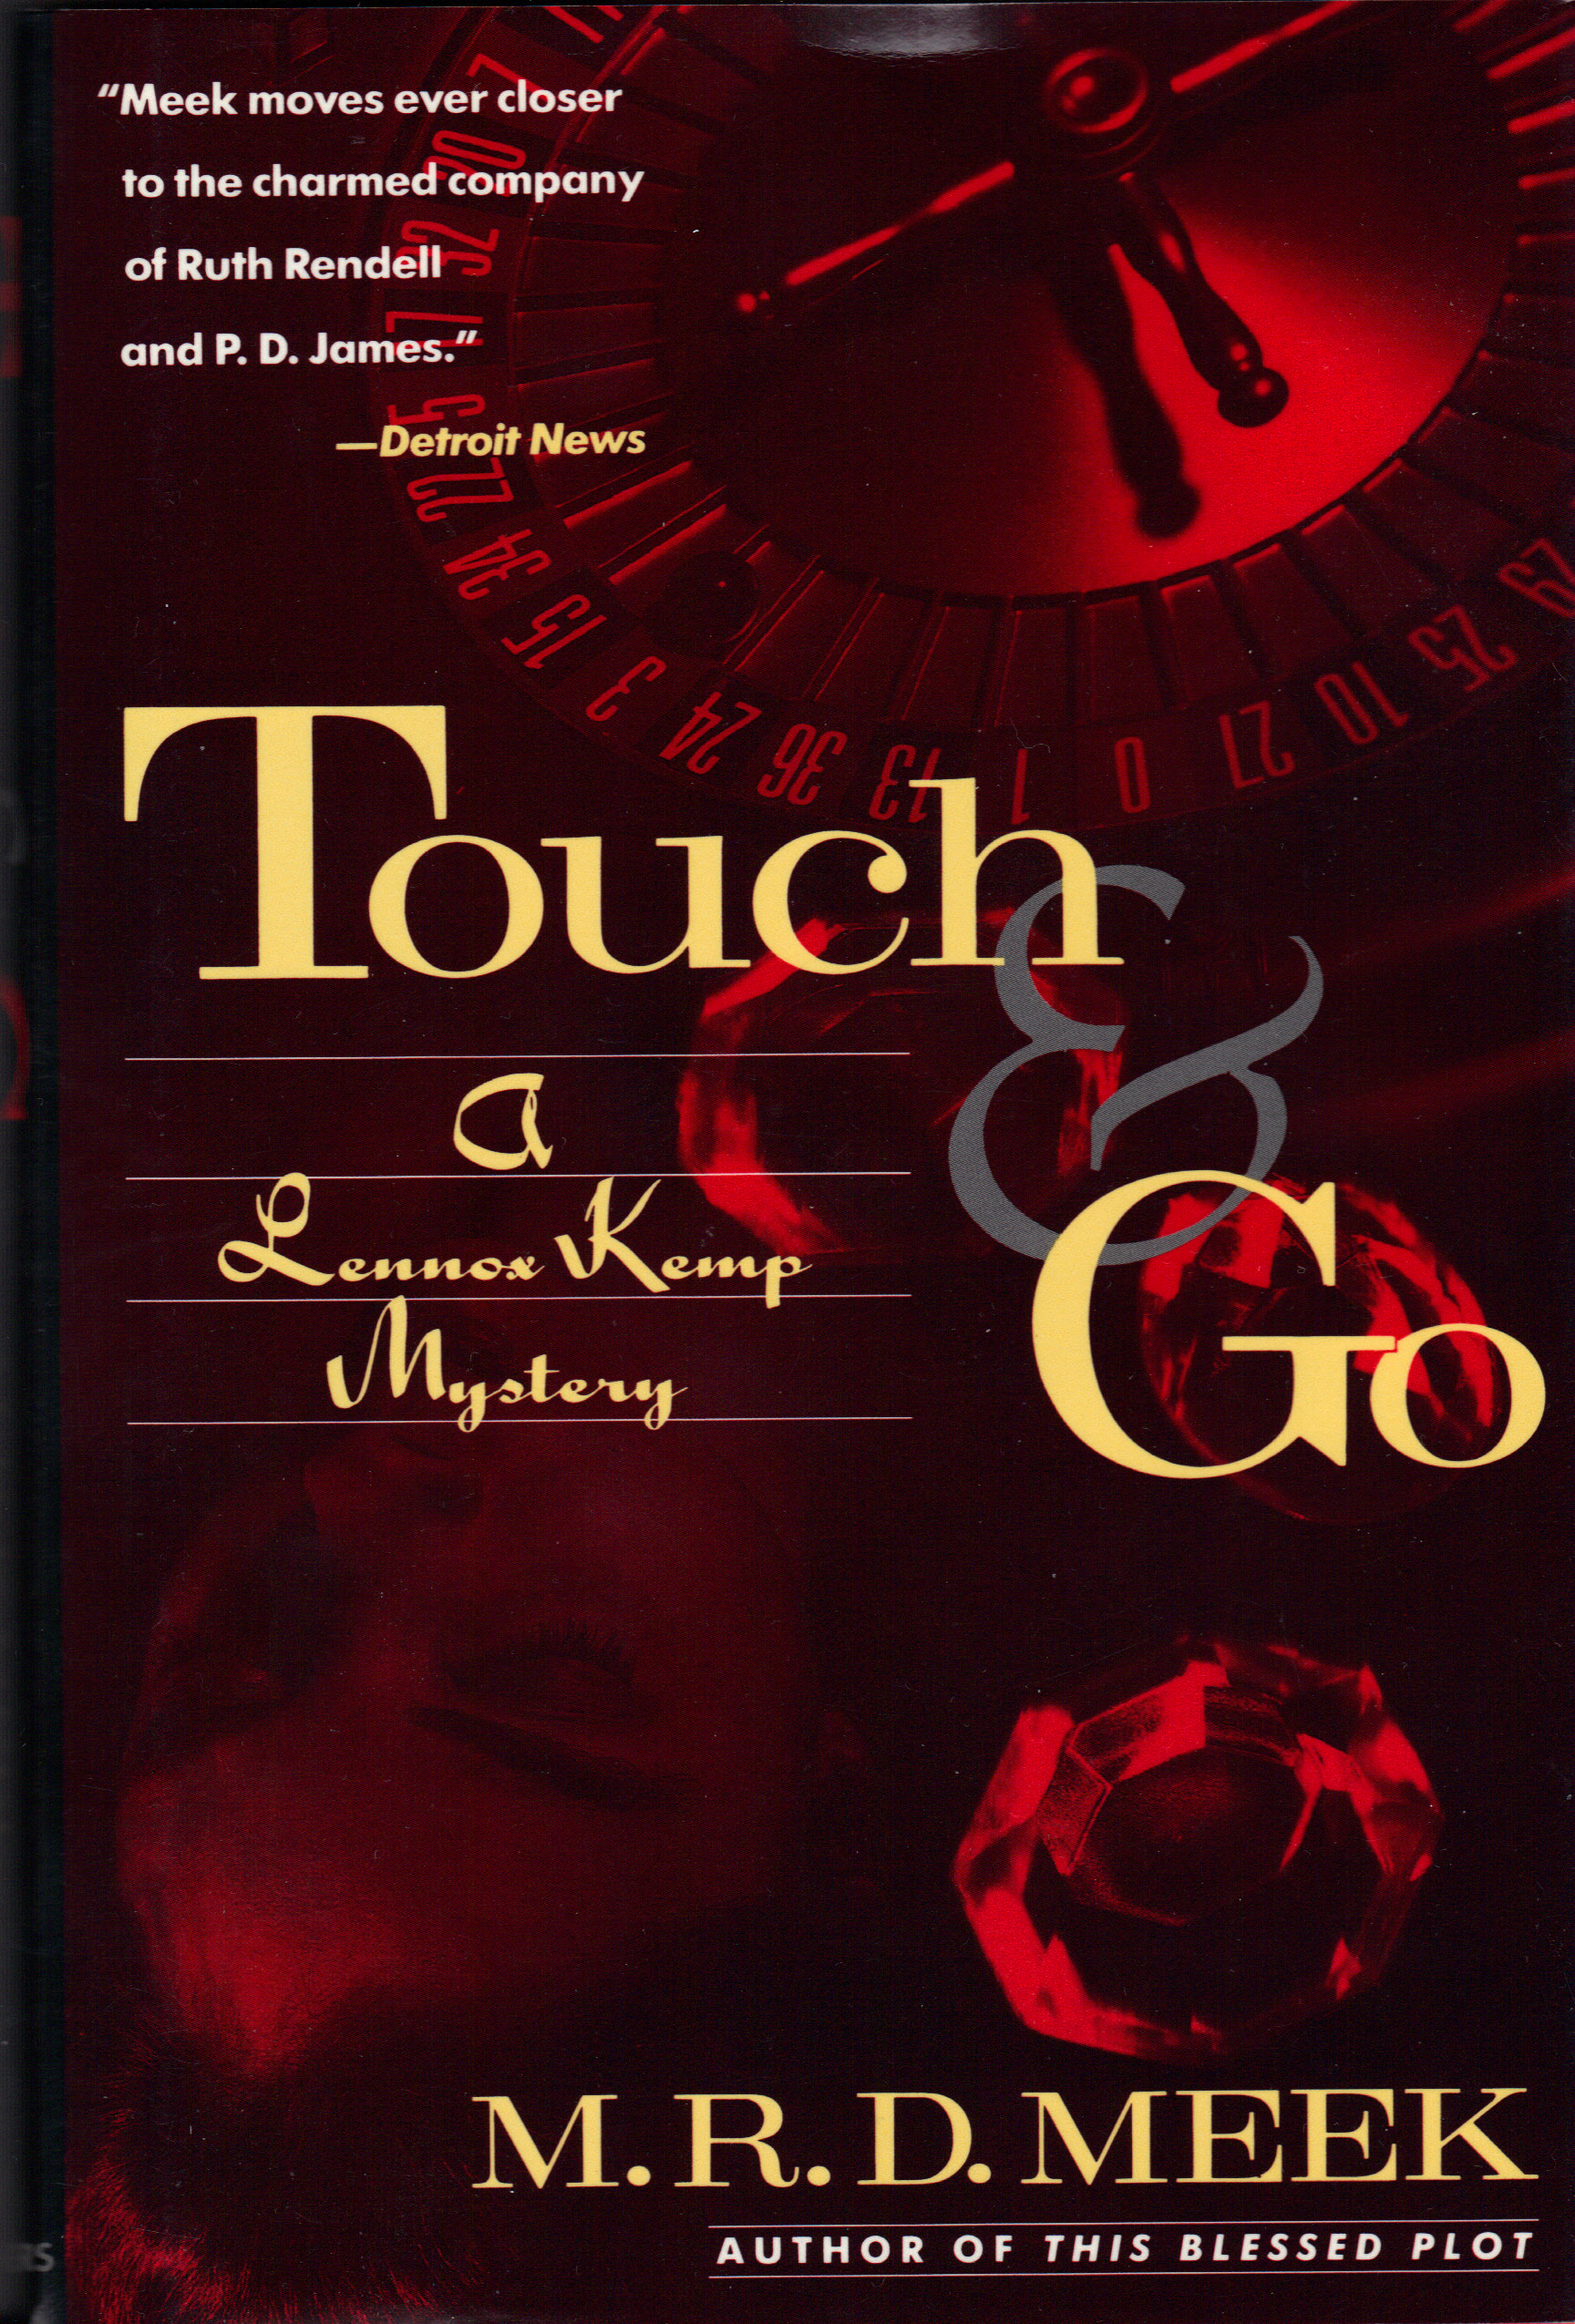 Image for TOUCH AND GO